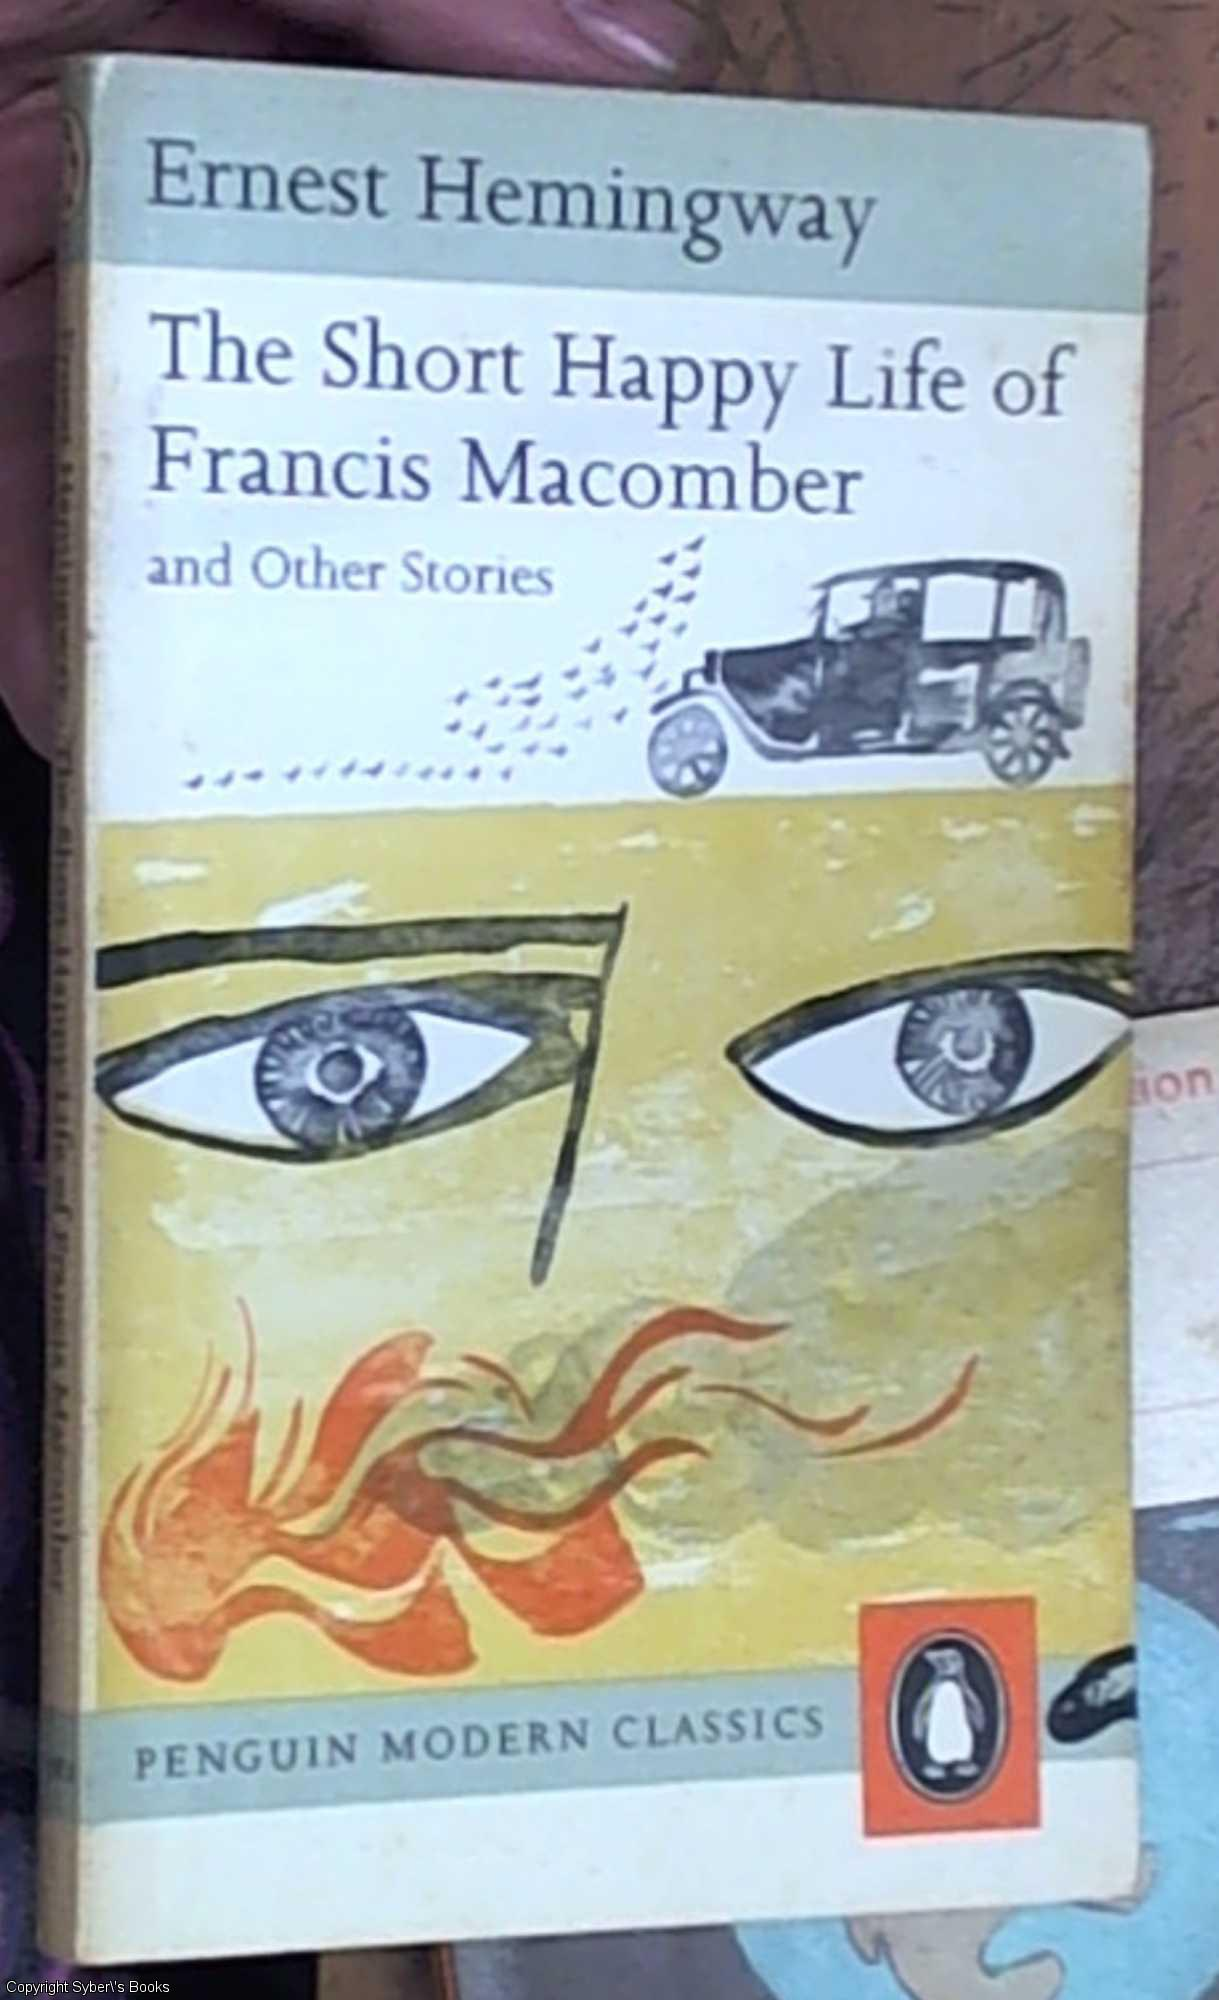 a mystery until the end in ernest hemingways the short happy life of francis macomber The short happy life of francis macomber the author ernest hemingway (1899-1961), born in oak park, illinois, started his career as a writer in a newspaper office in kansas city at the age of seventeen.